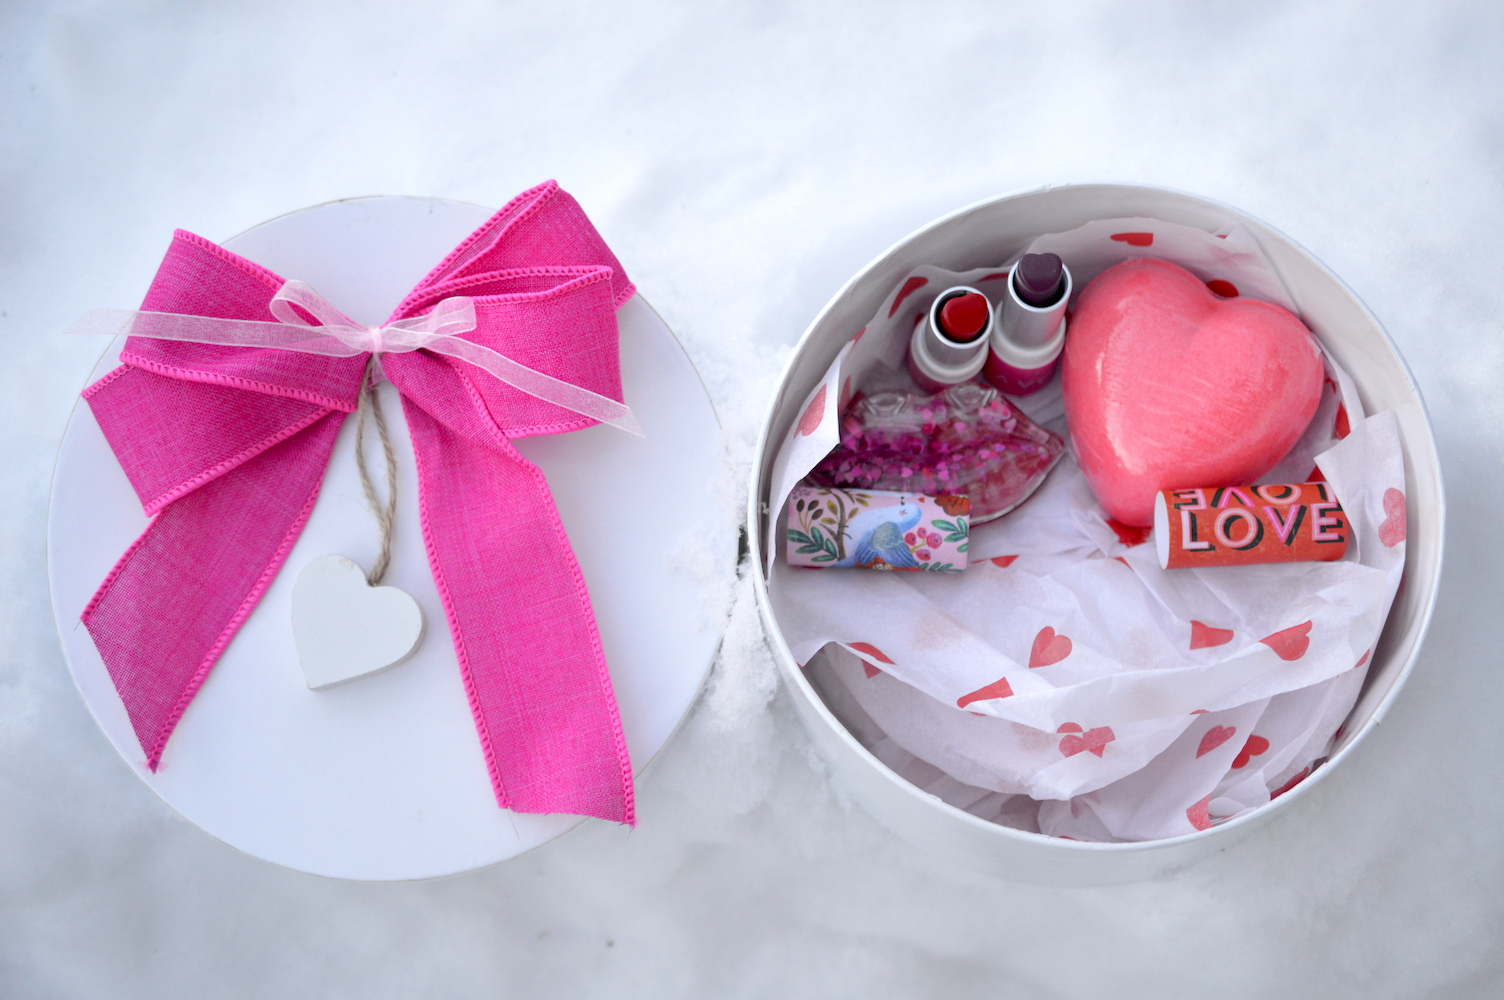 AVON's Valentine's Day collection